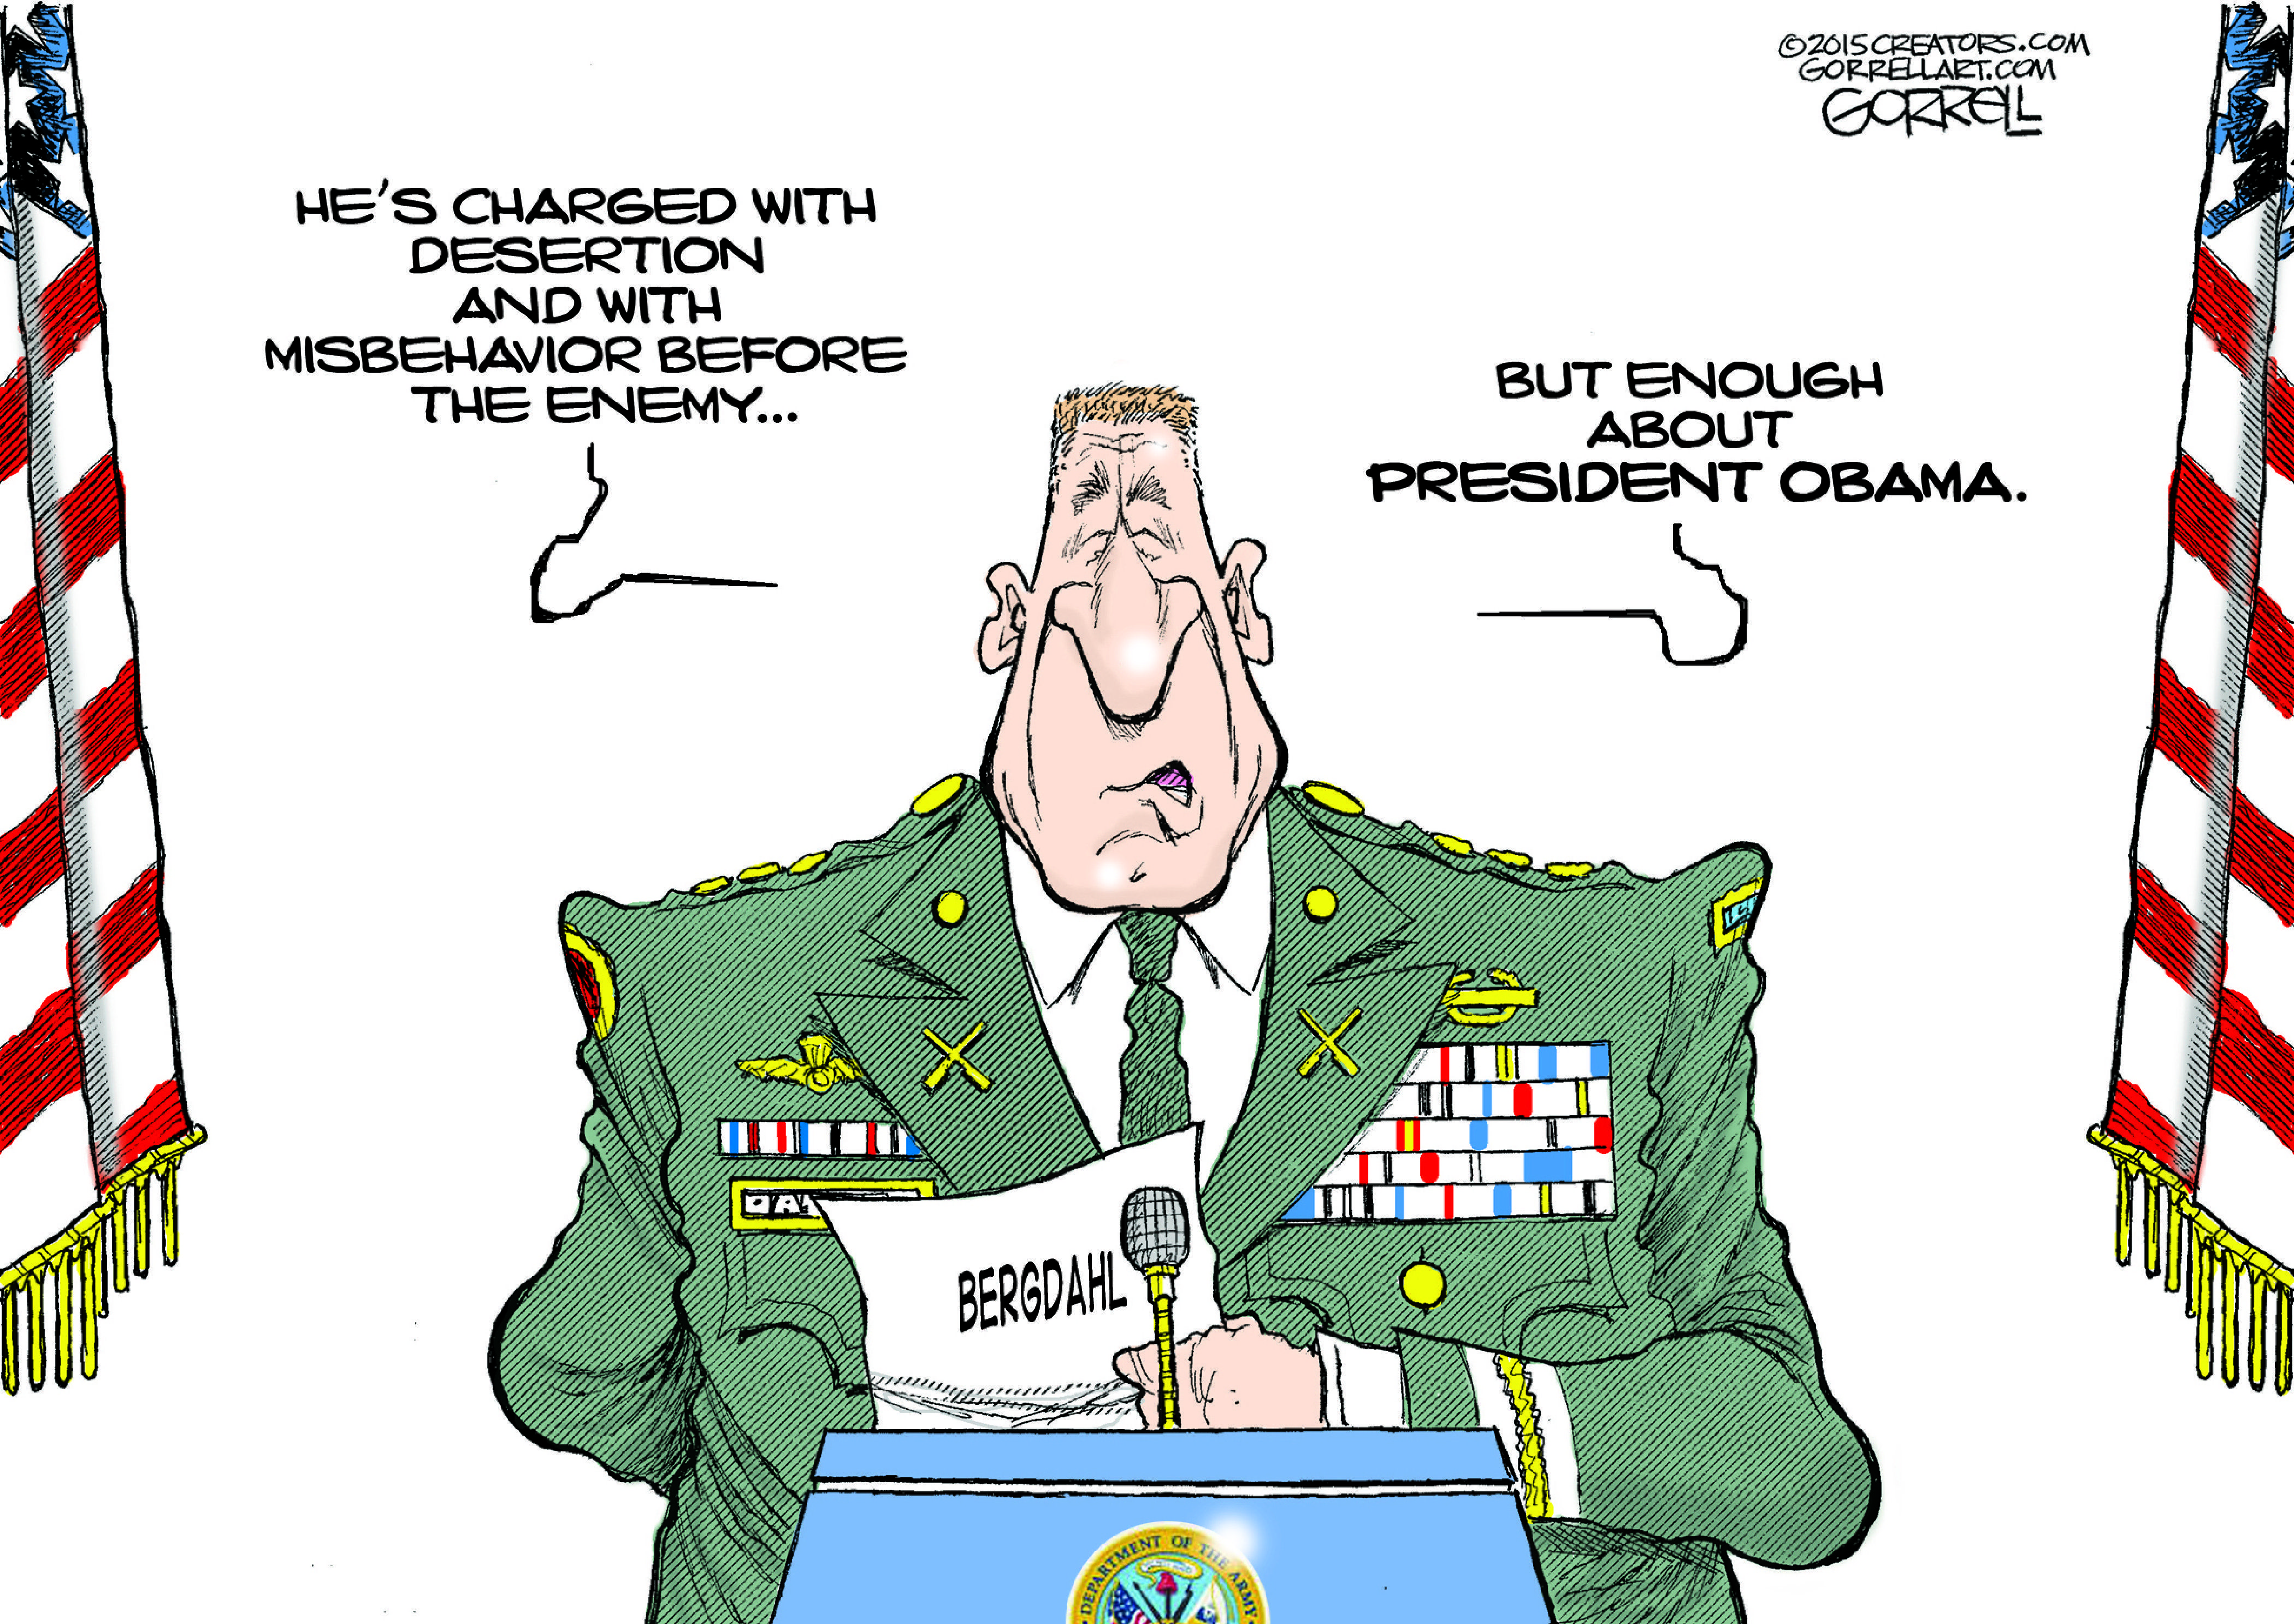 Are We Talking About Bergdahl Or Obama?